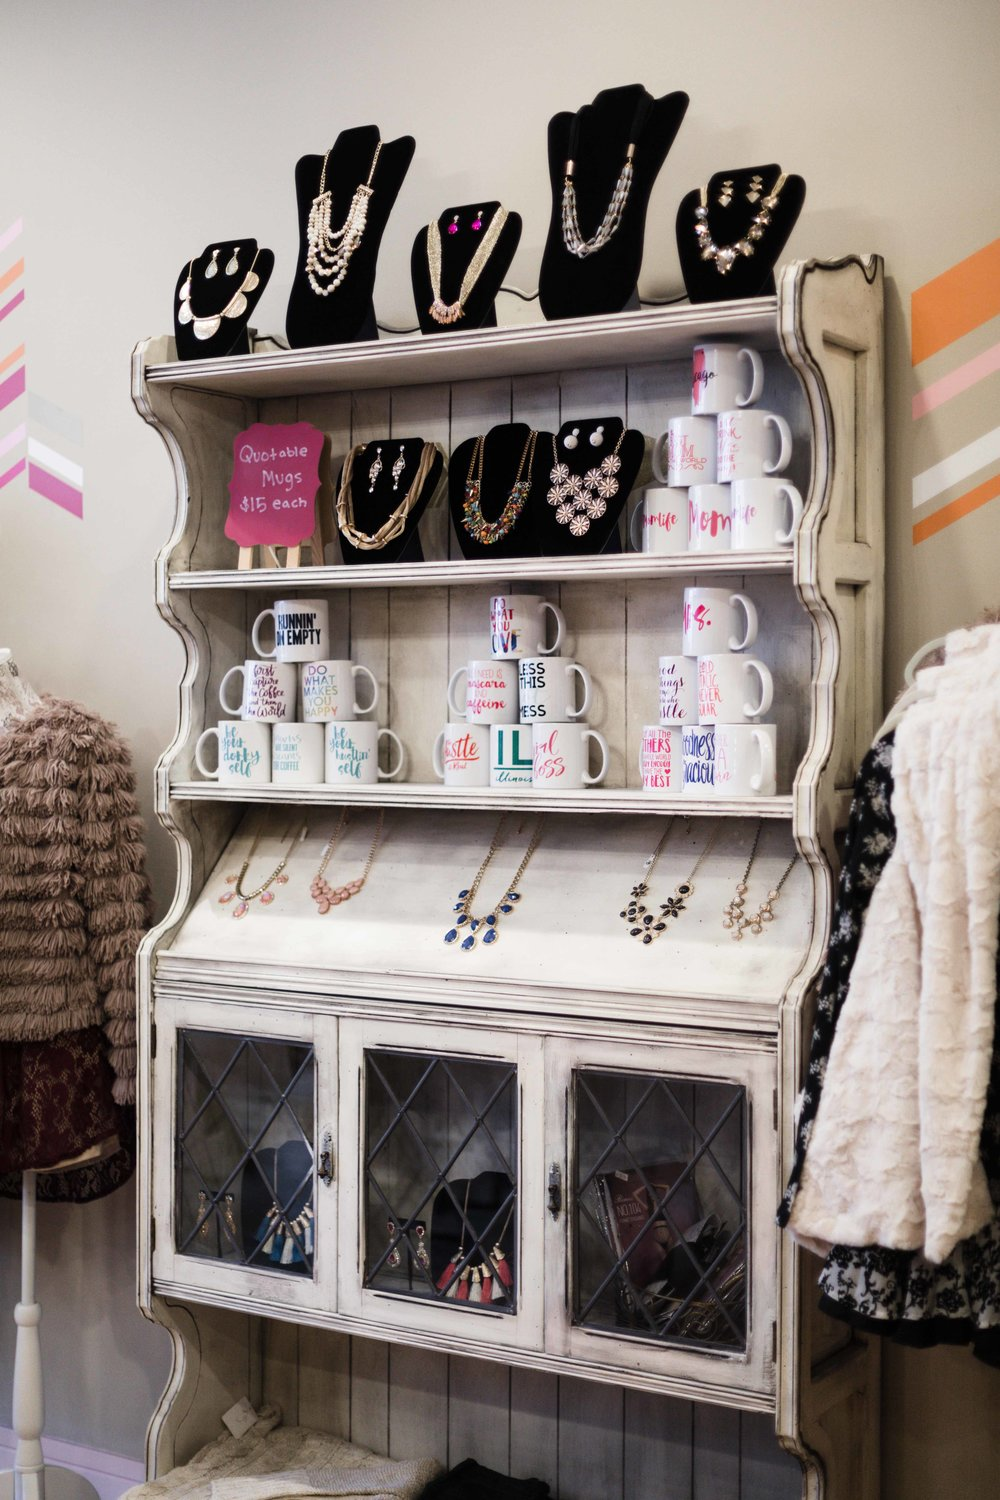 Chicago women's clothing boutique The Colette Collection interviewed for Inspired Chicago